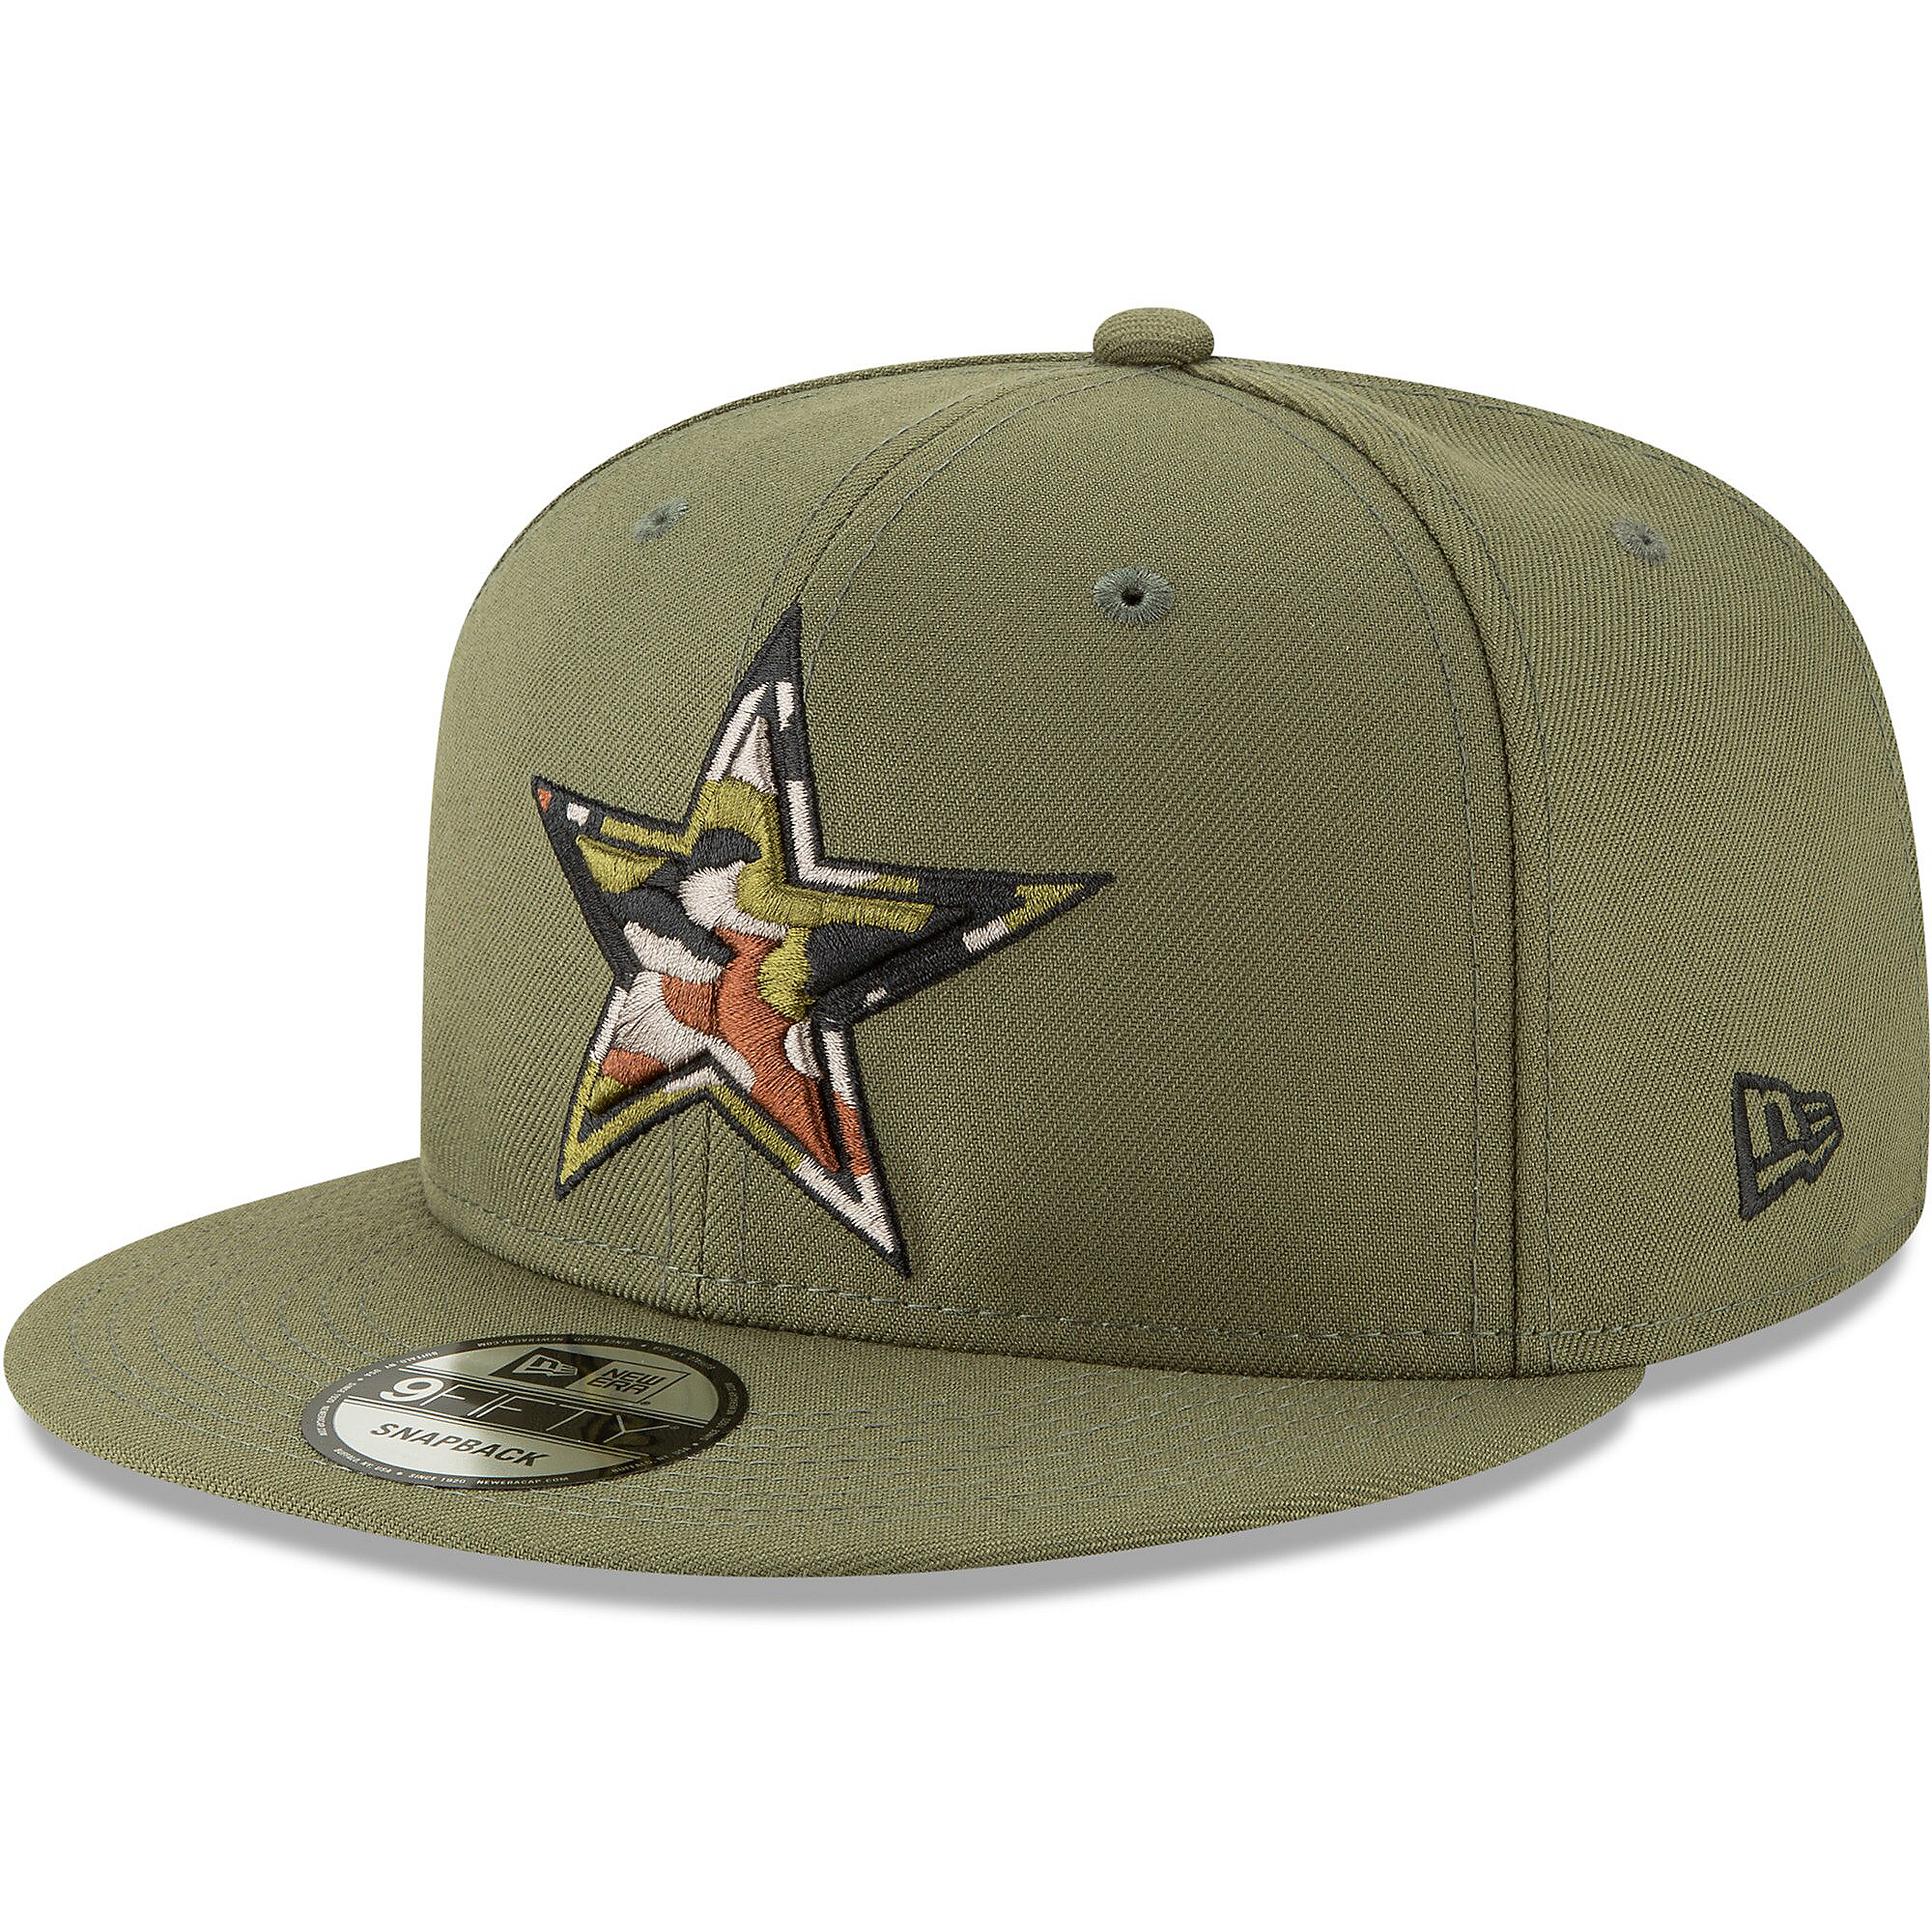 Dallas Cowboys New Era Camo Trim 59Fifty Cap